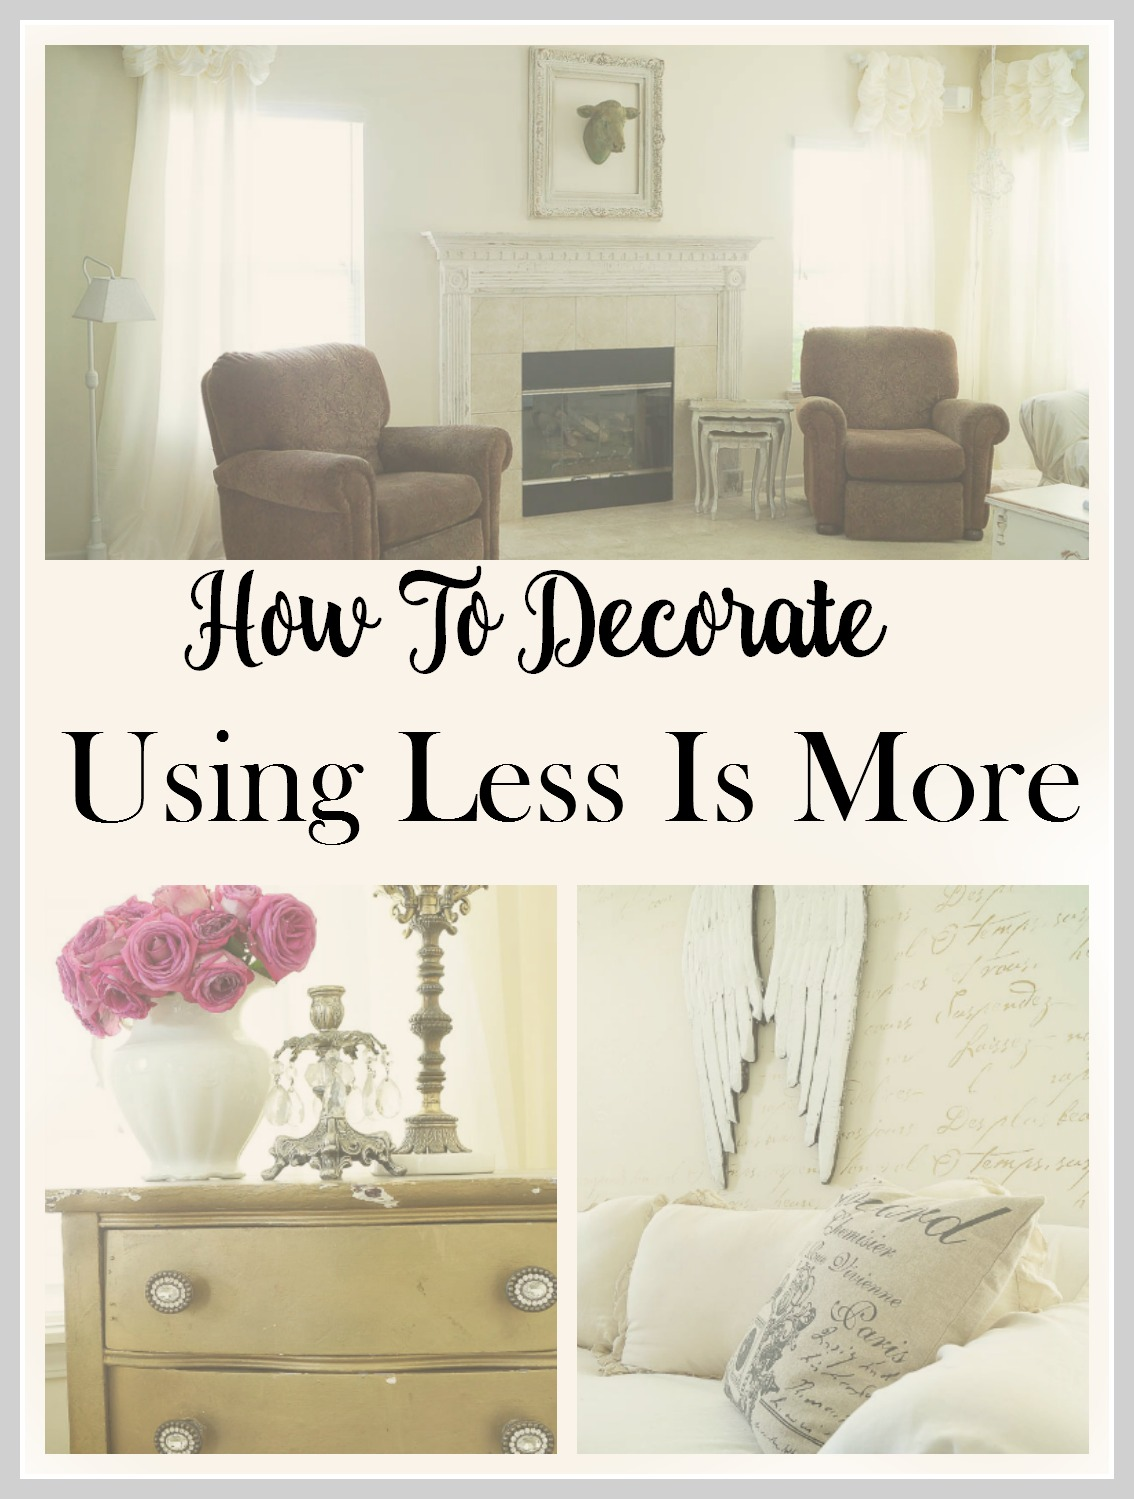 Home Accents 4 Less